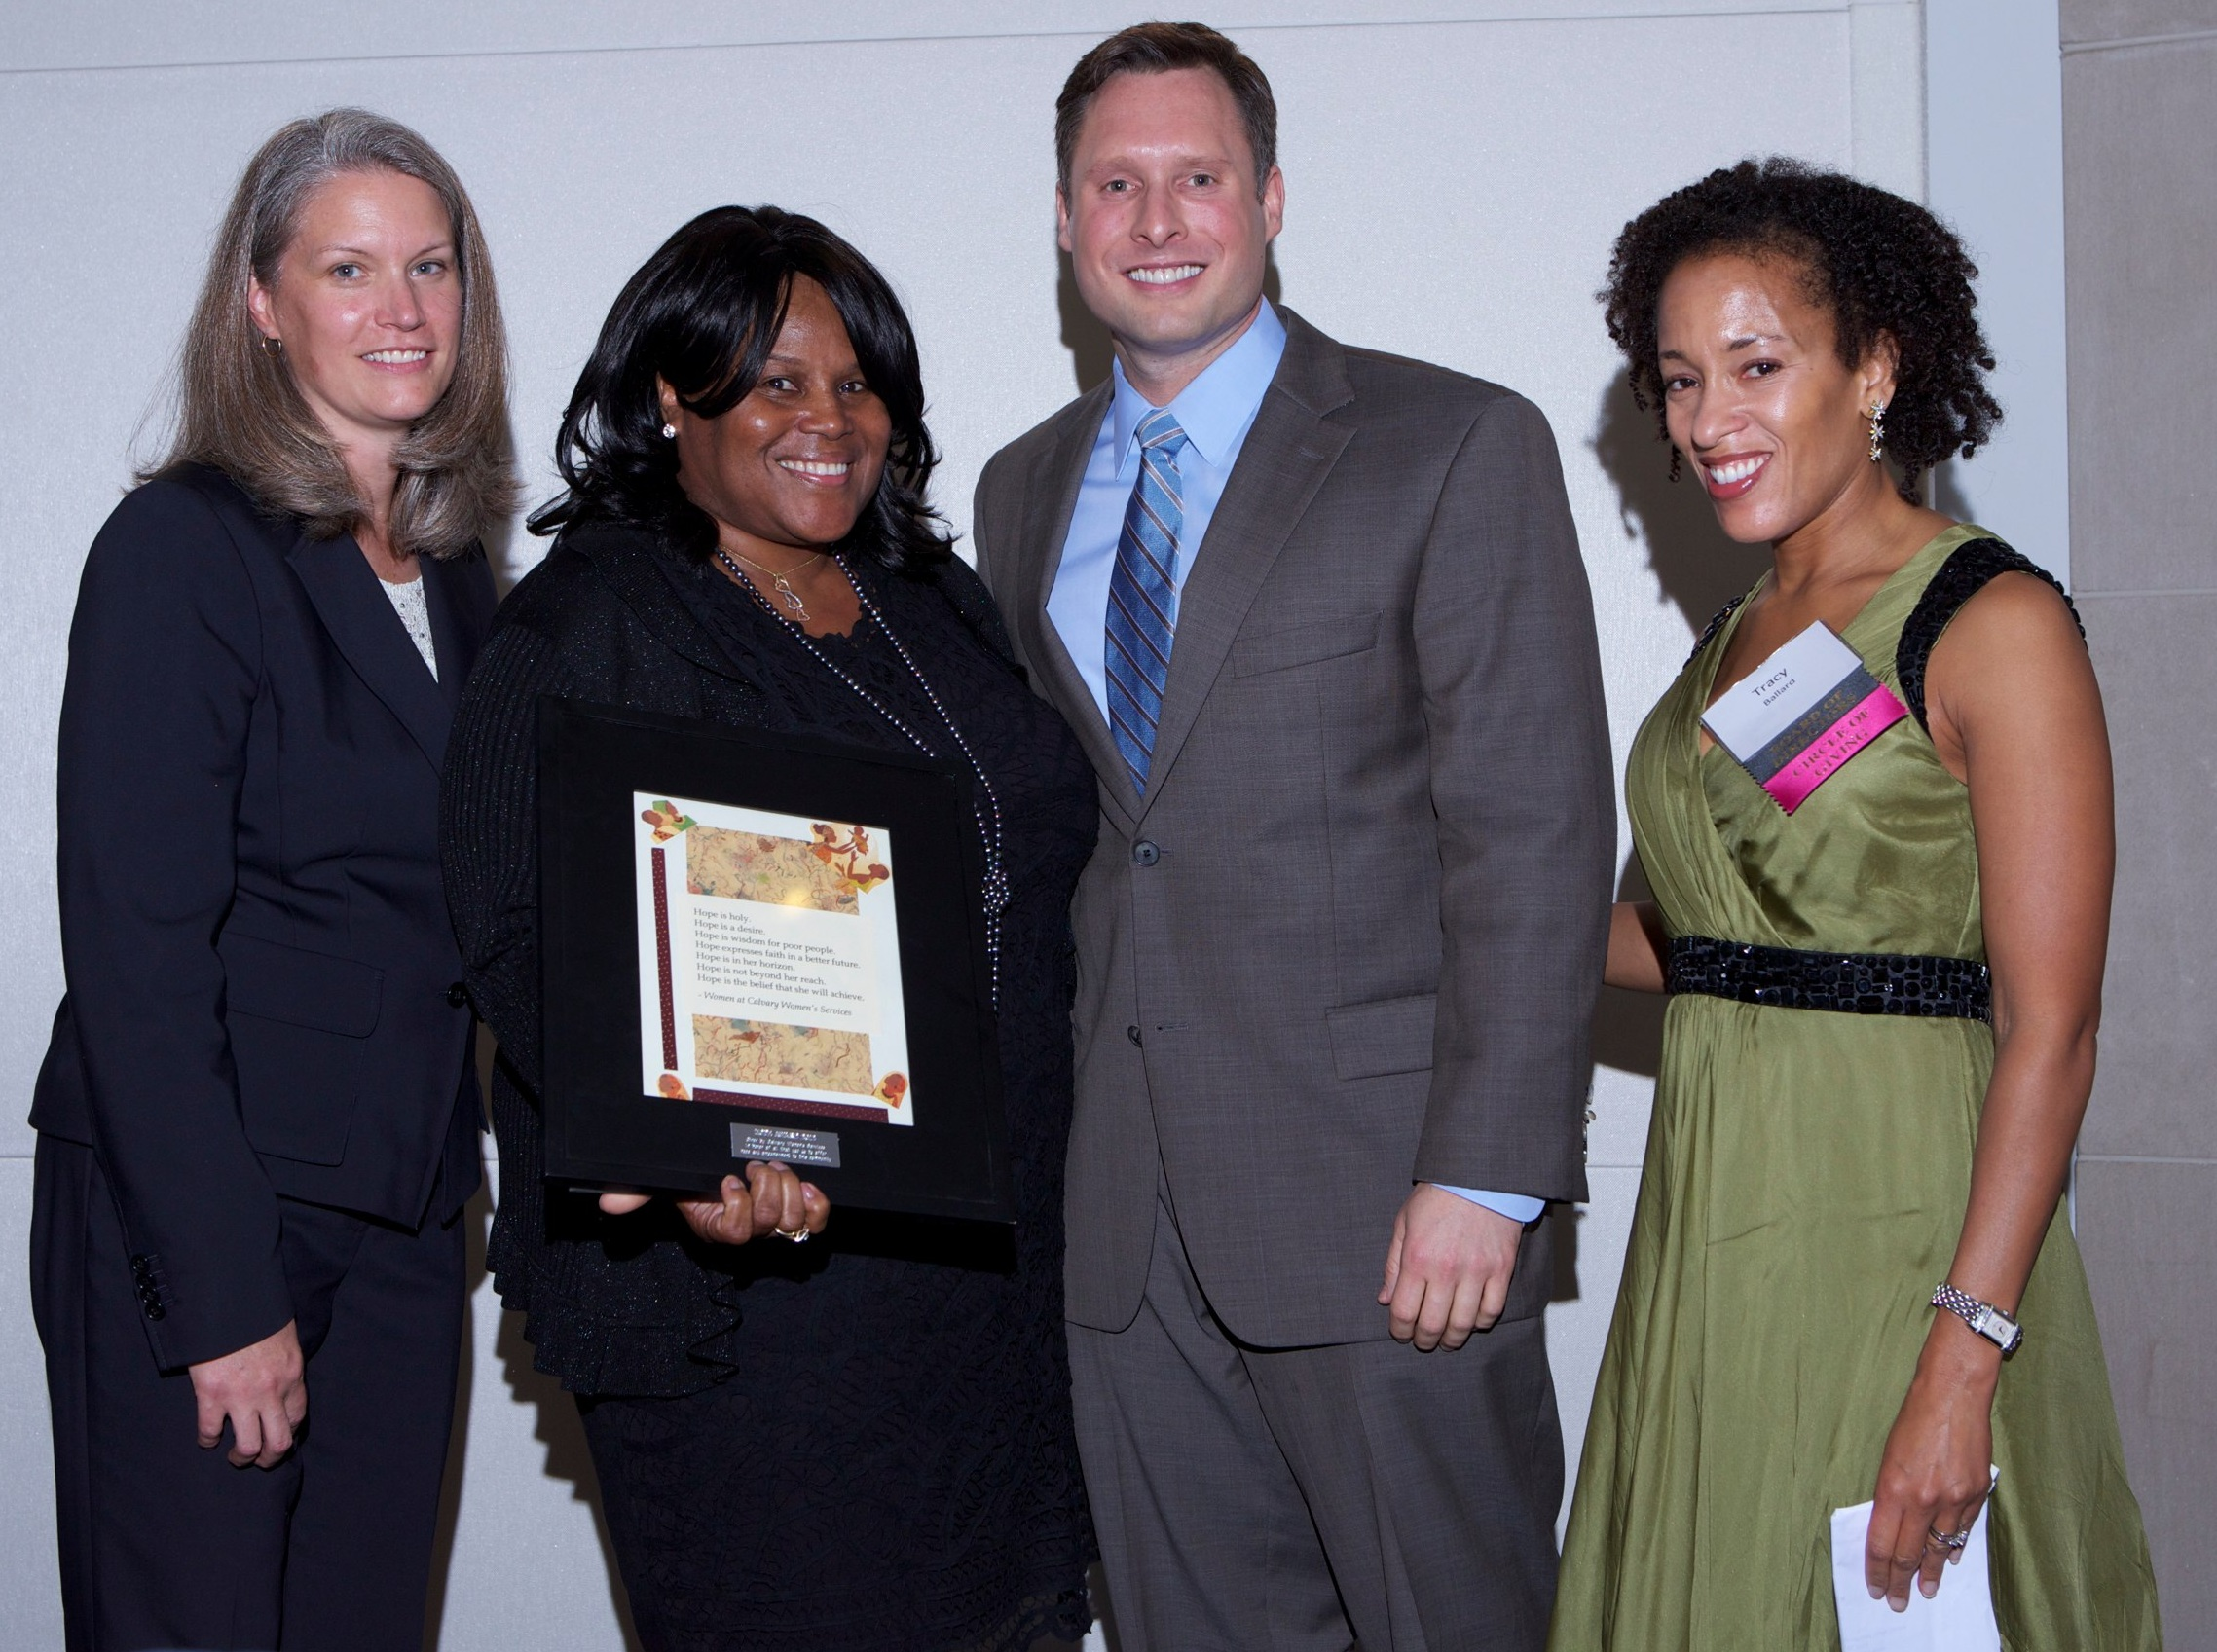 Executive Director Kris Thompson with honoree Sandra Evers-Manly, emcee Steve Rudin of ABC7/WJLA-TV, and Board President Tracy Ballard.